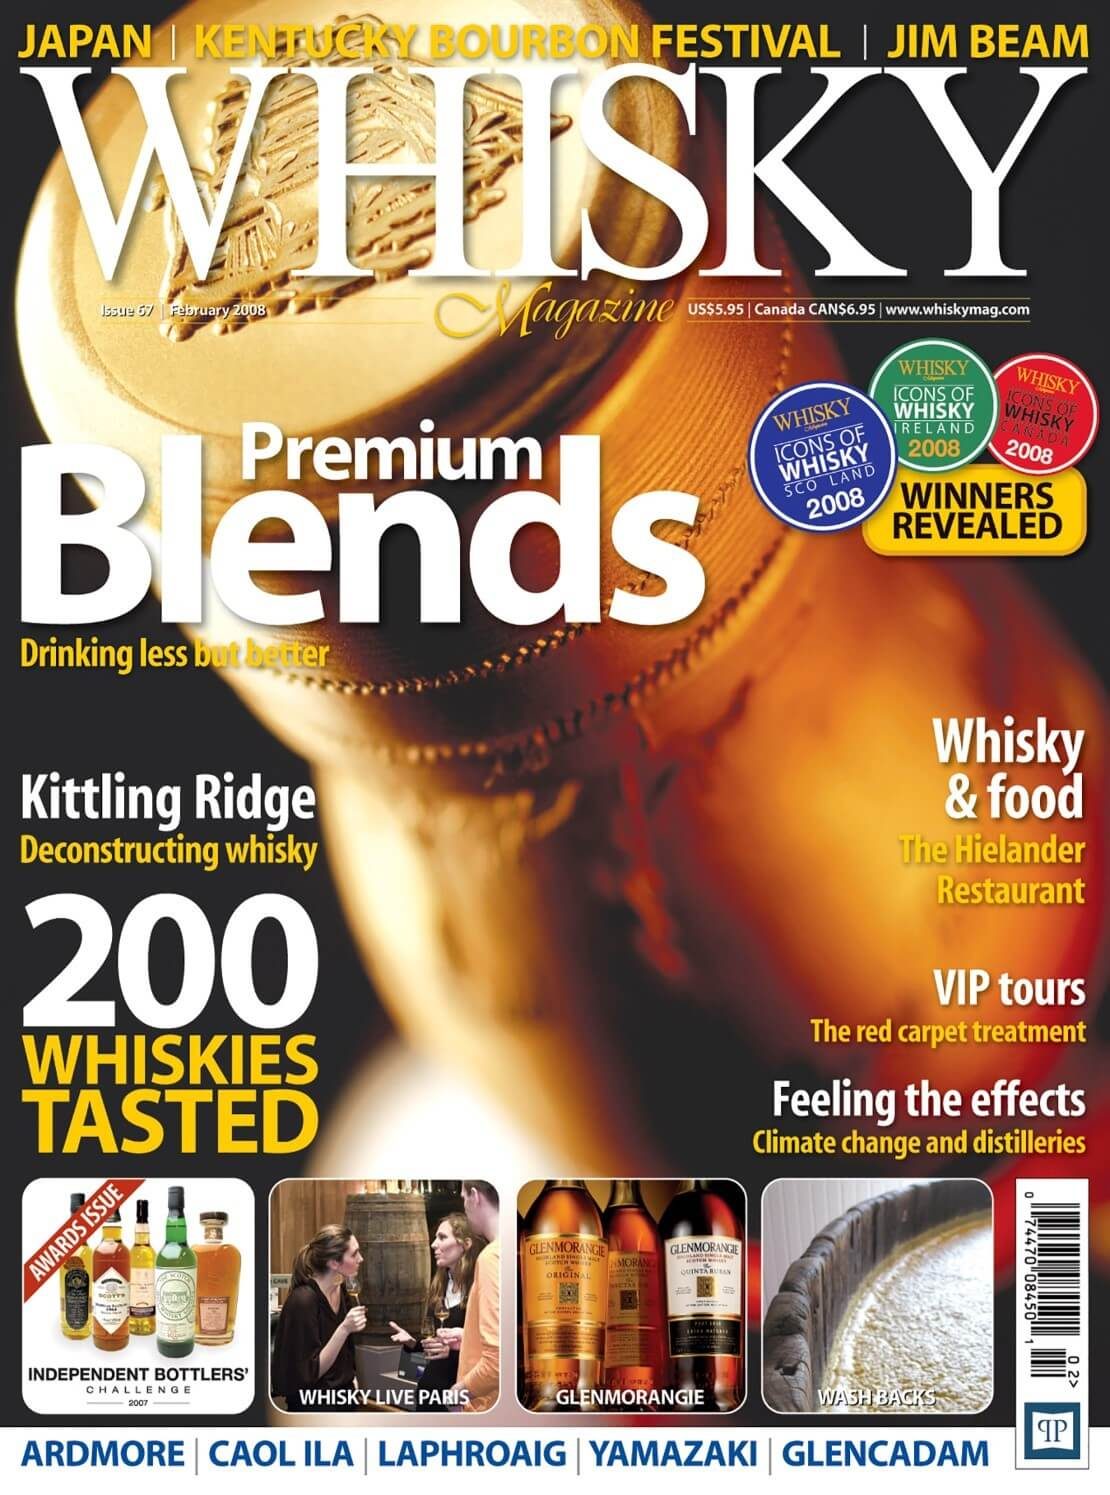 Premium Blends Kittling Ridge 200 Whiskies Tasted Icons of Whisky Whisky and Food VIP Tours...